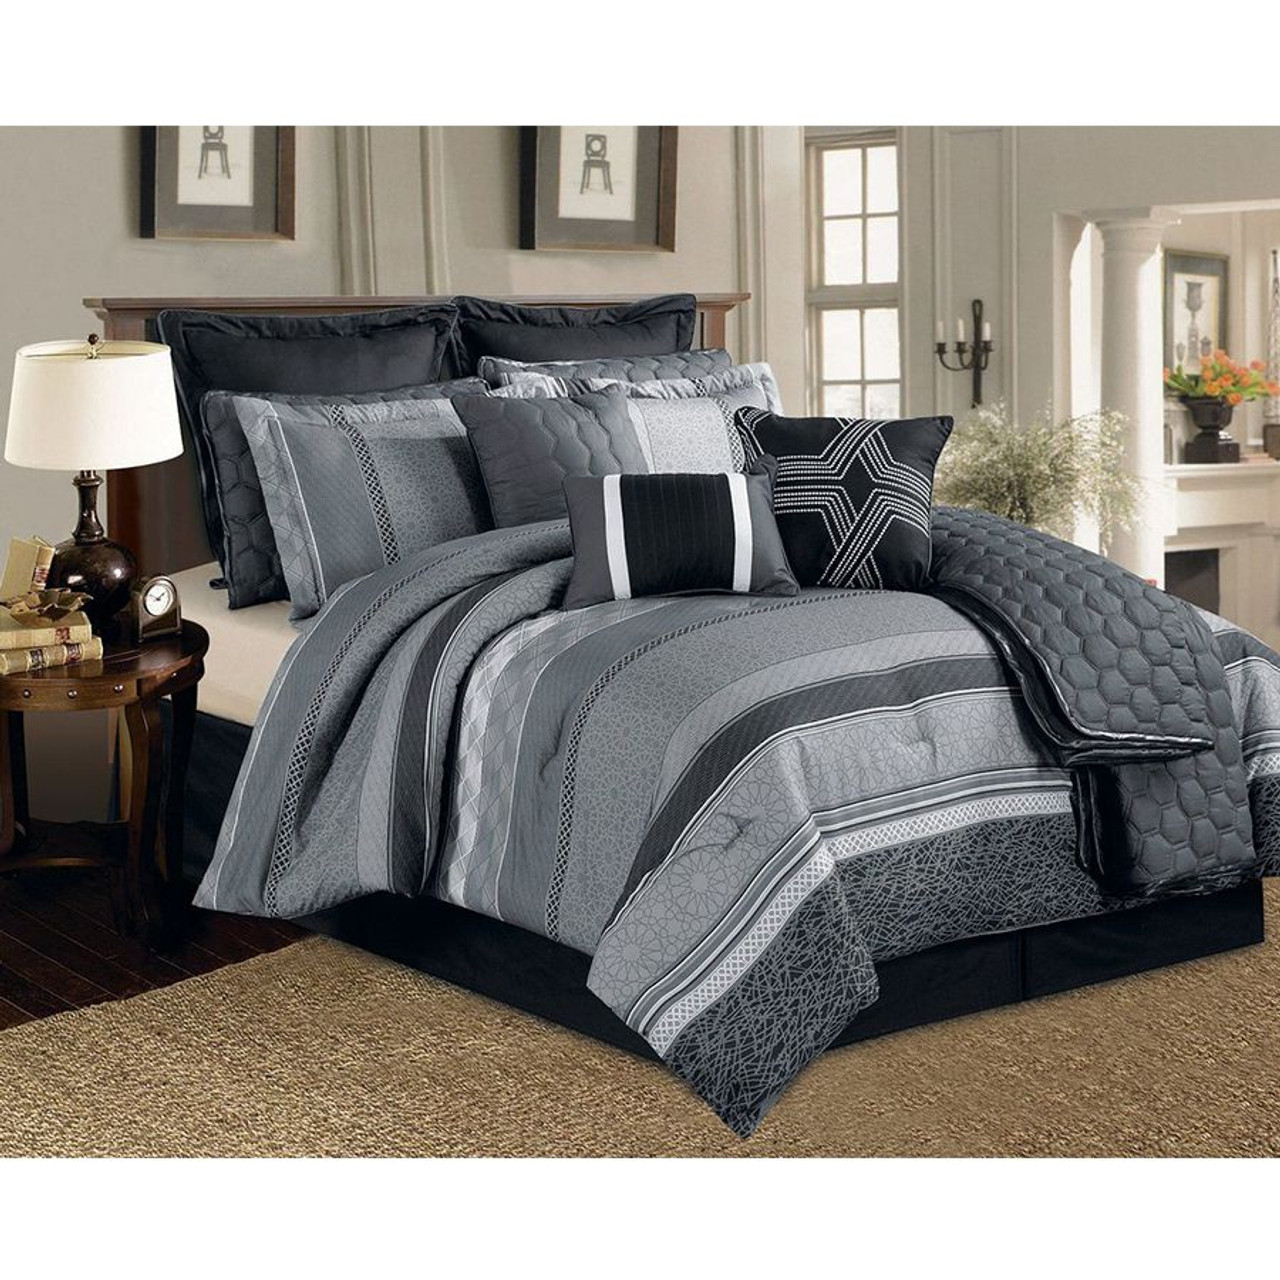 12 pc black grey and white striped pattern comforter set with quilt included